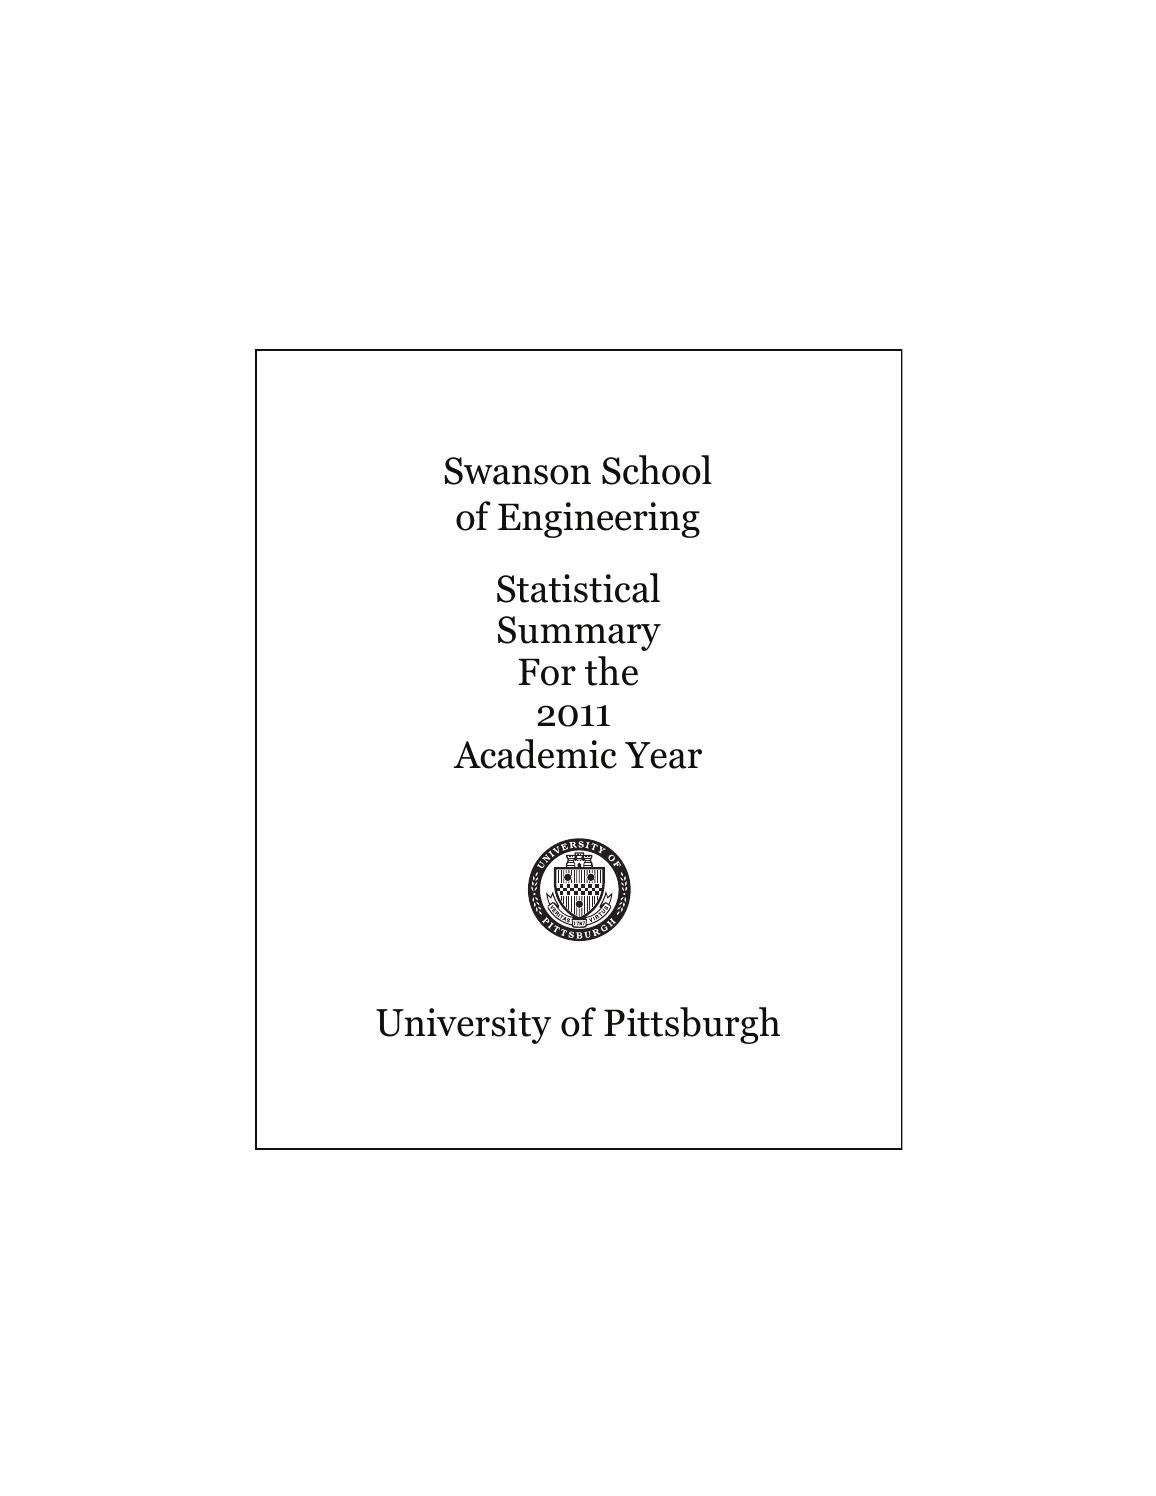 2011 Ssoe Statistical Summary By Pitt Swanson School Of